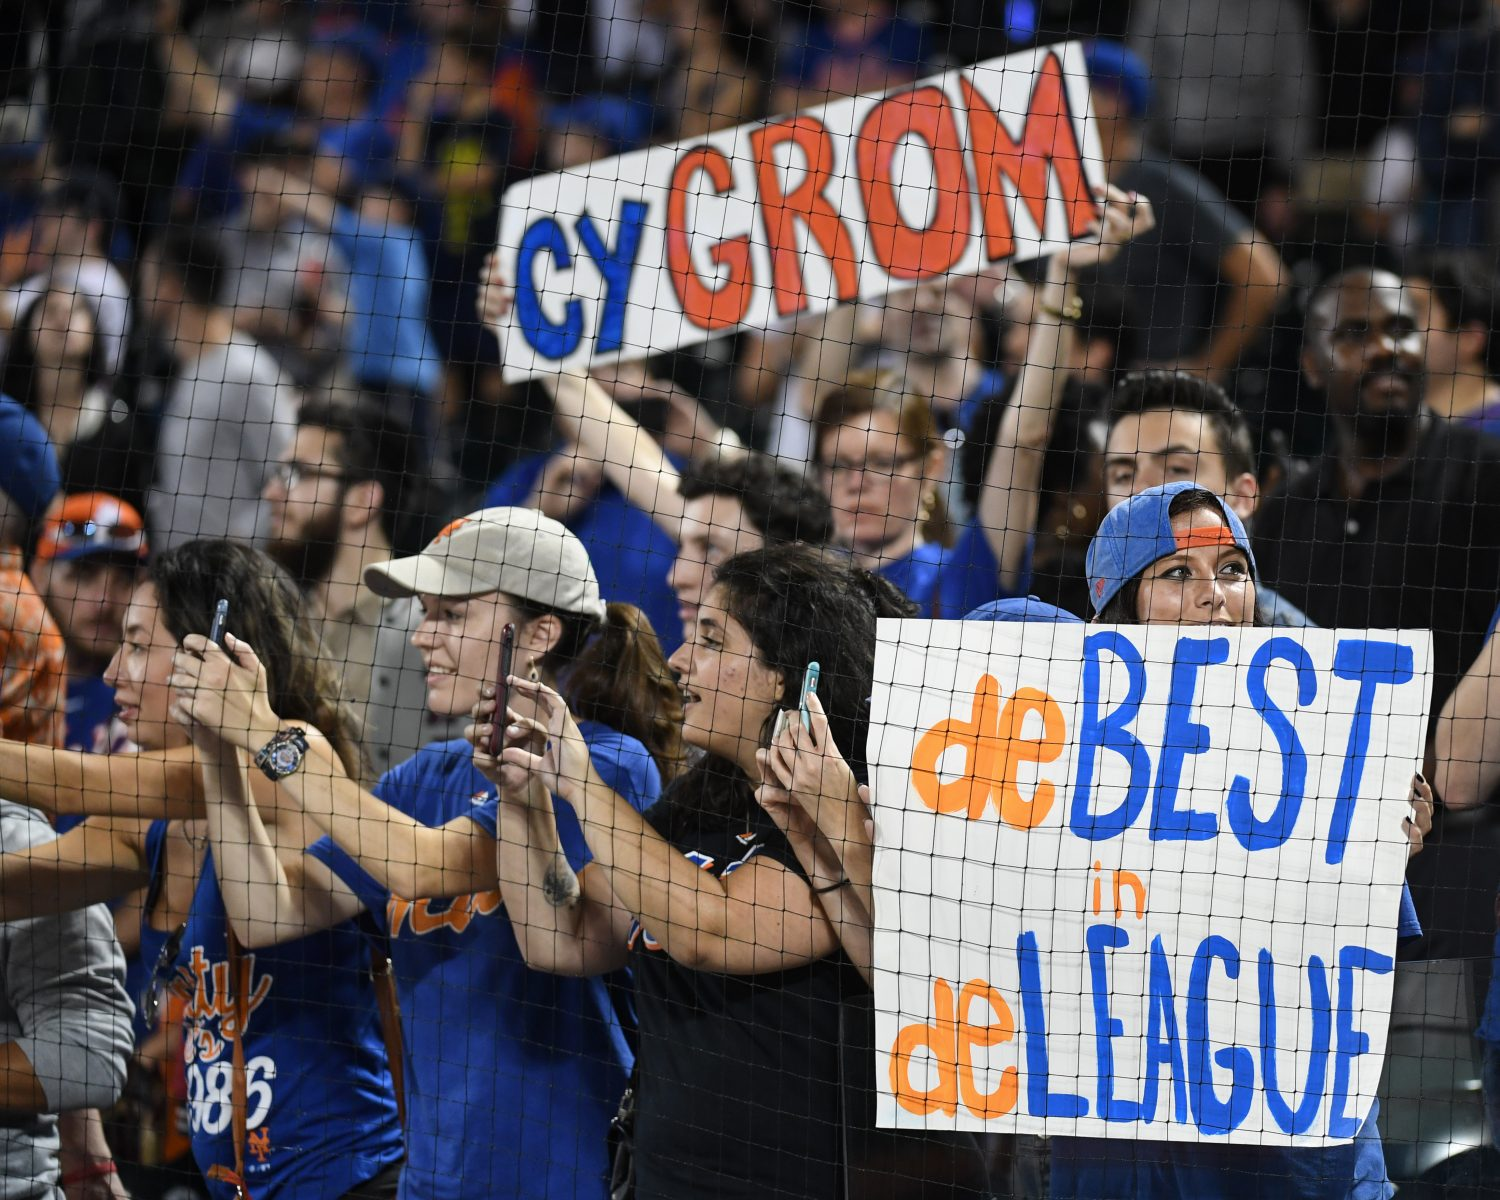 Photo of Jacob deGrom Fans with Signs